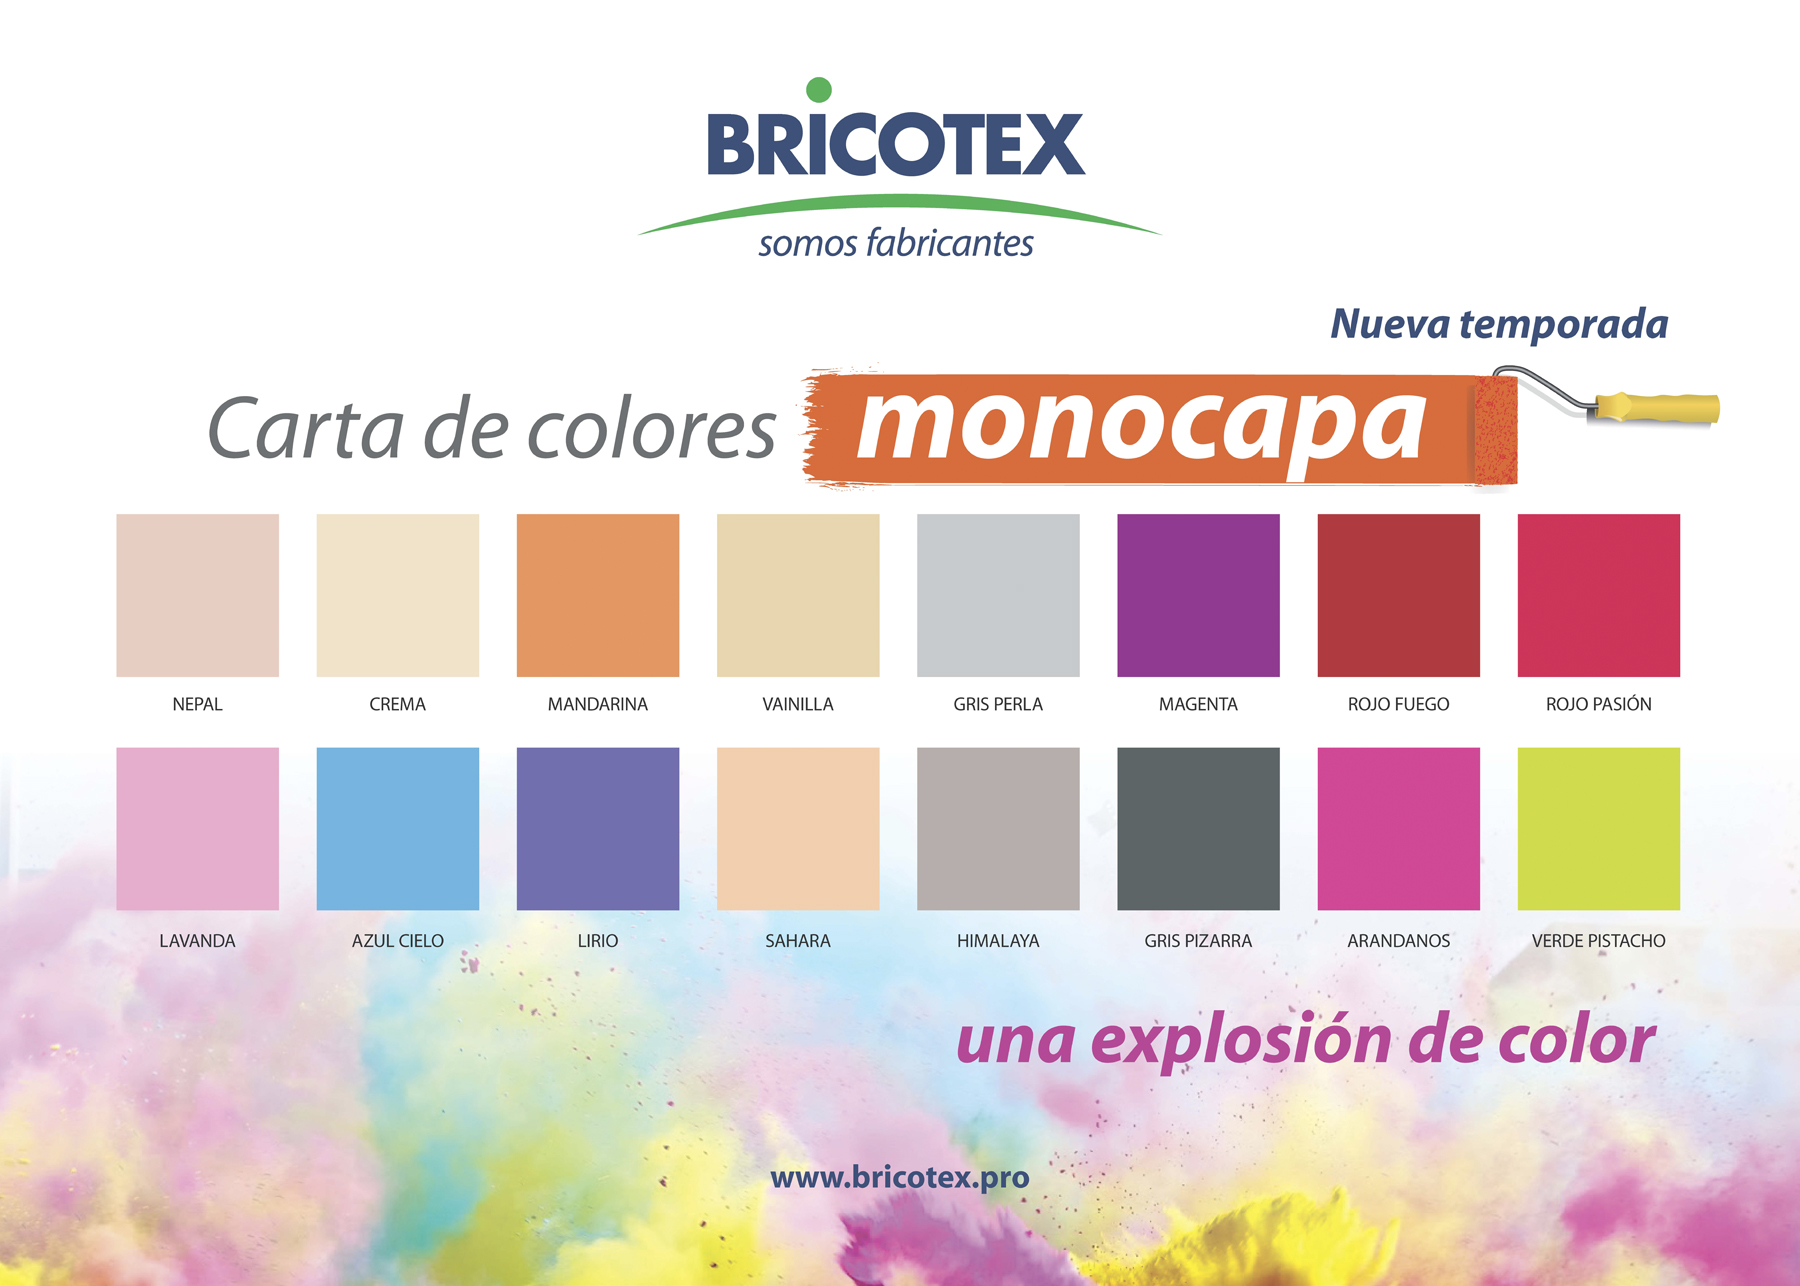 Pintura pl stica paredes y techos una capa 2 5 lt bricotex - Paleta colores pintura pared ...